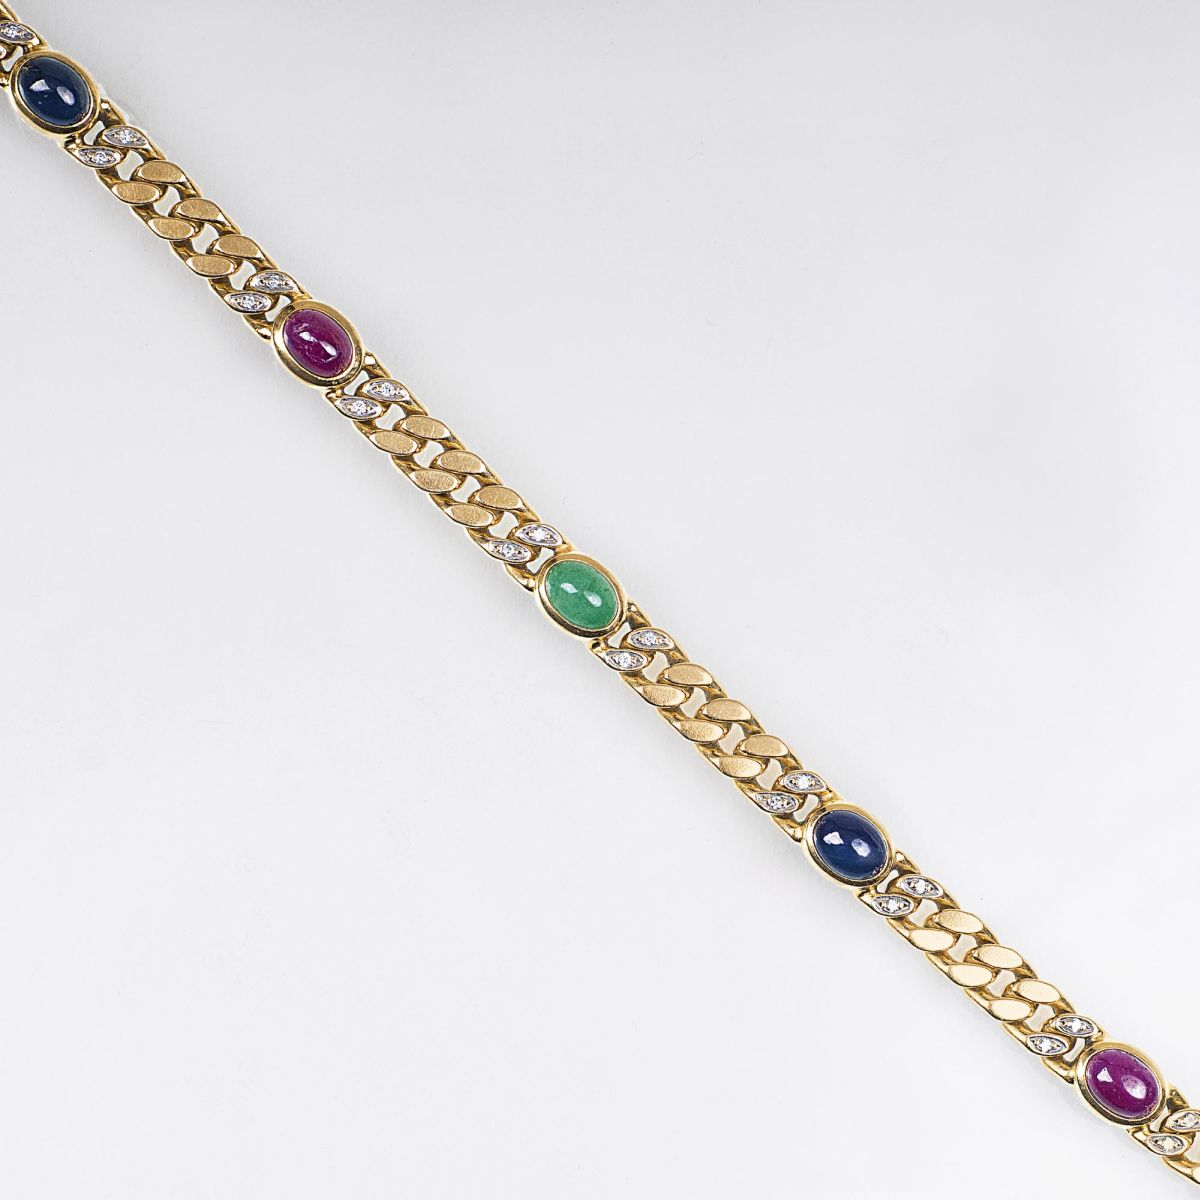 A Gold Curb Chain Bracelet with Gemstones